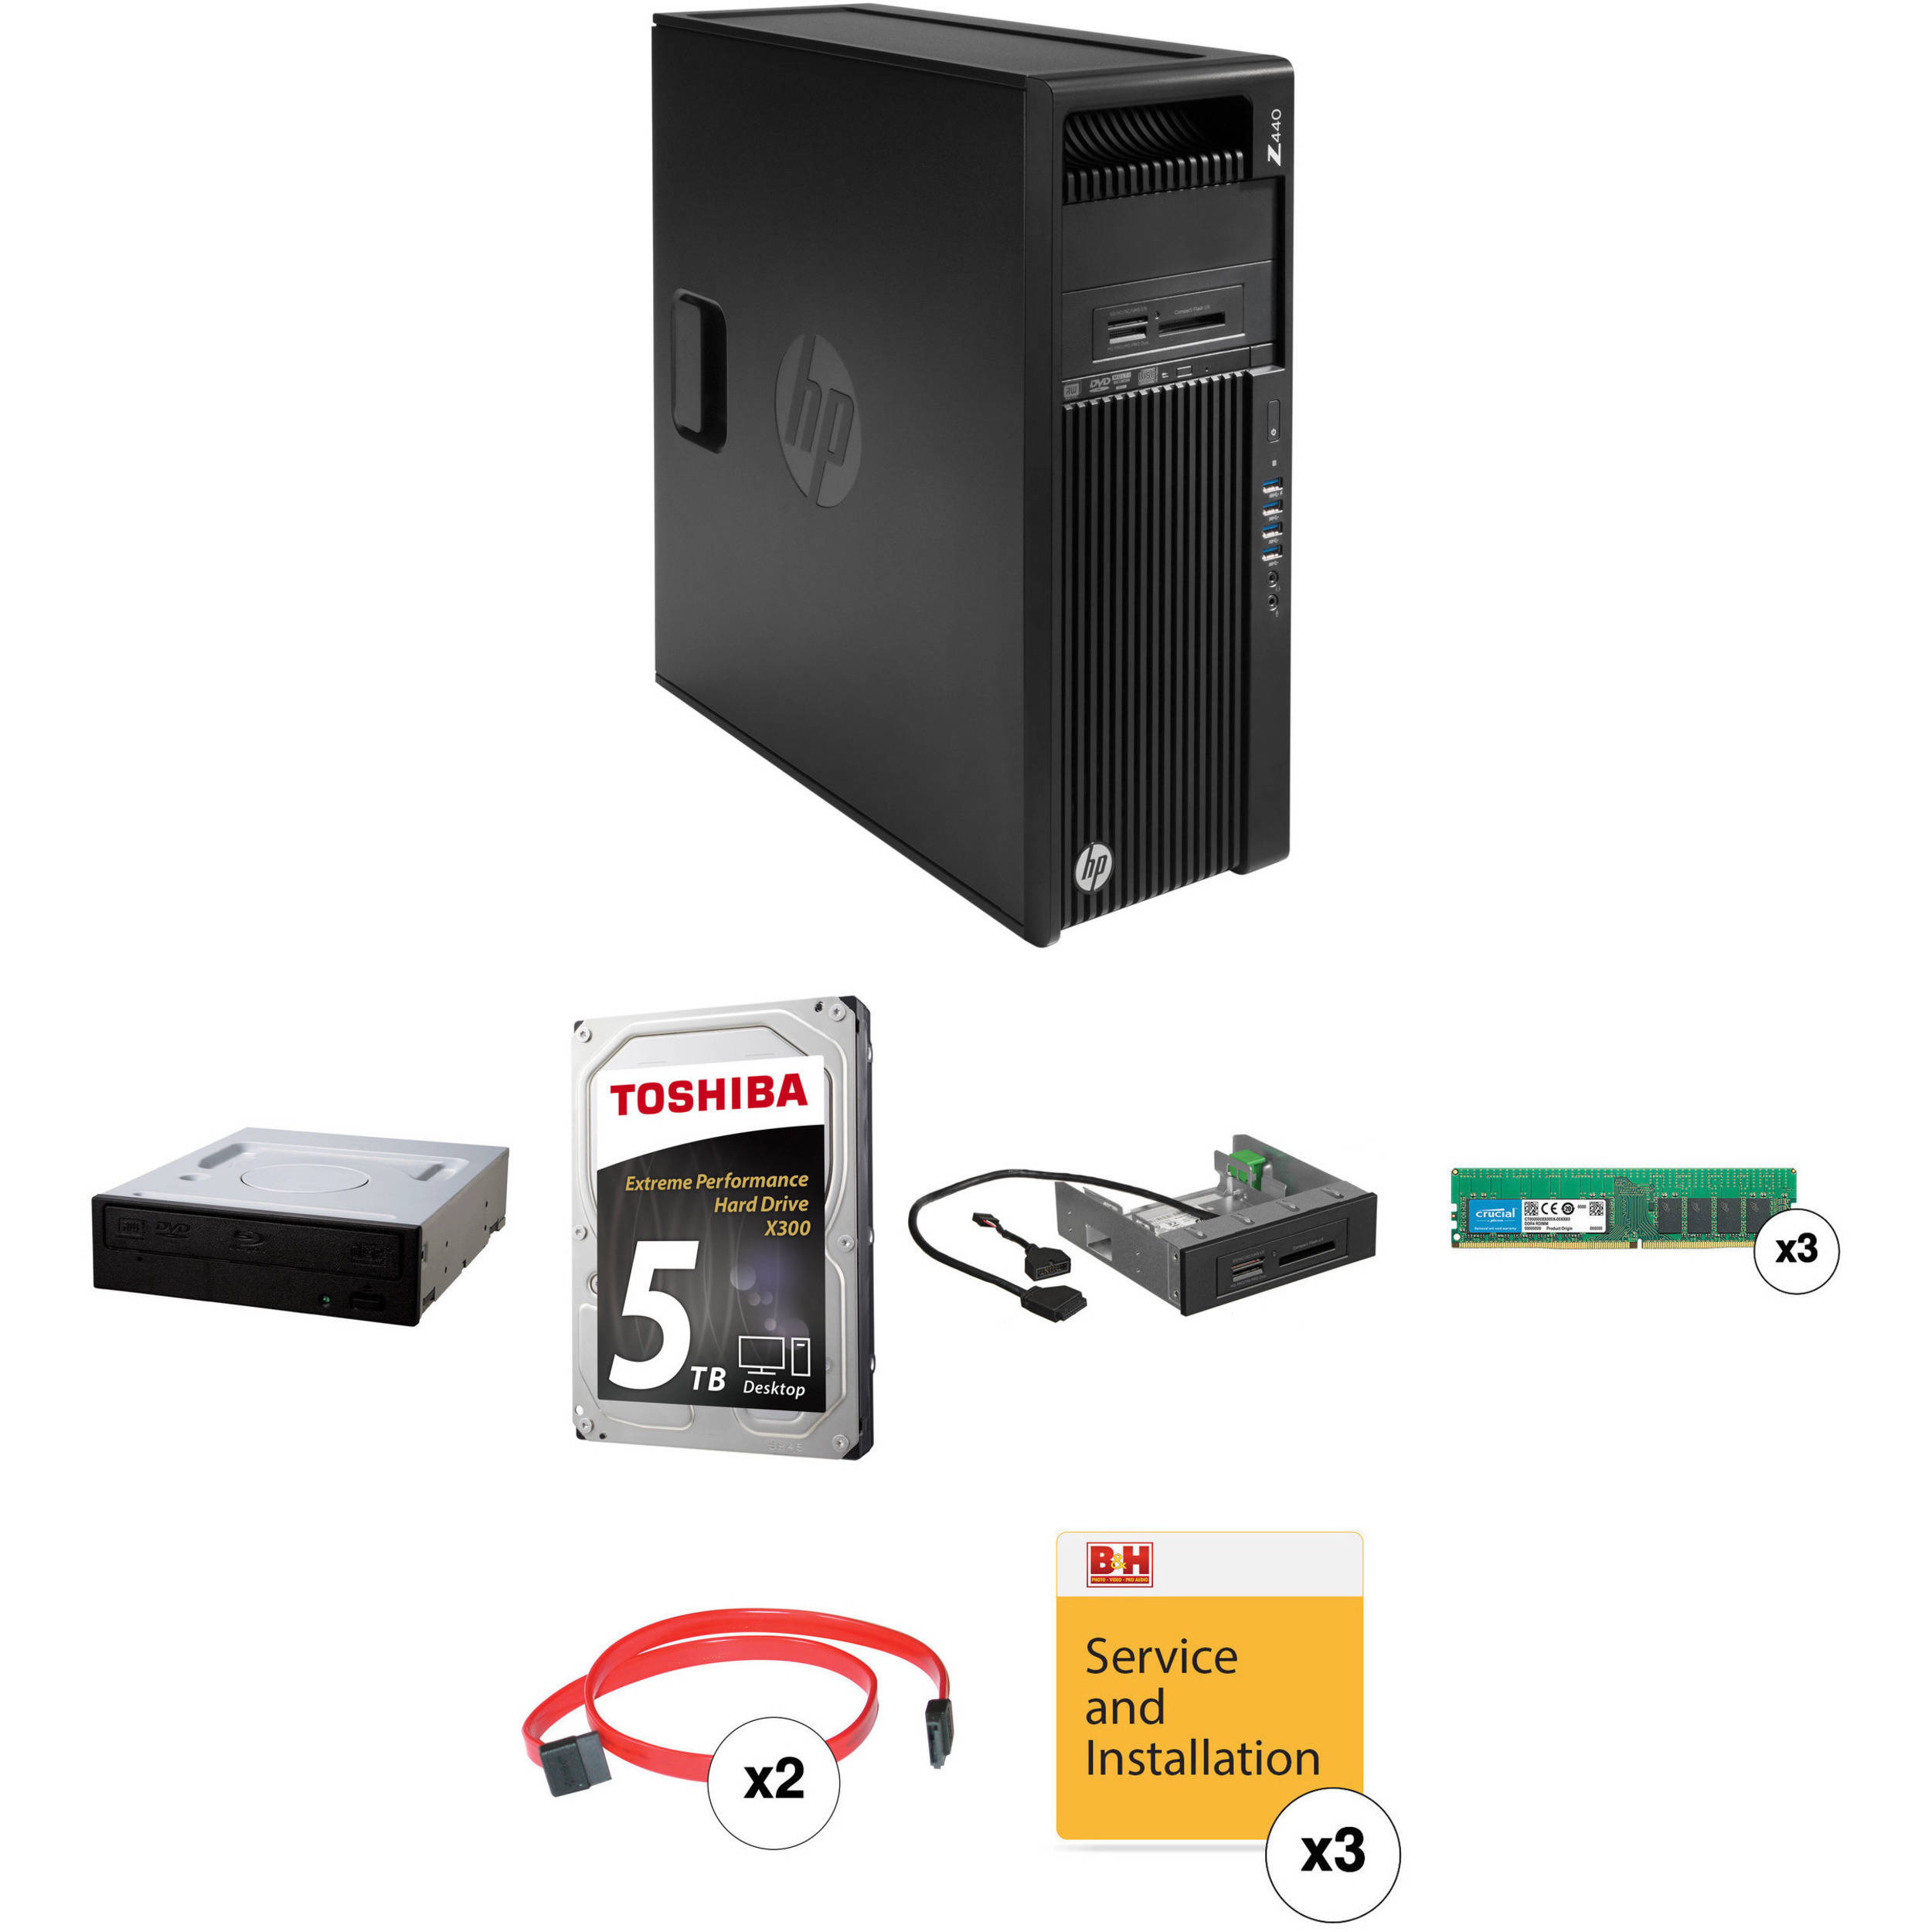 HP Z440 Series Turnkey Workstation with 32GB RAM, 5TB HDD, Blu-ray  Rewriter, and 15-in-1 Media Card Reader